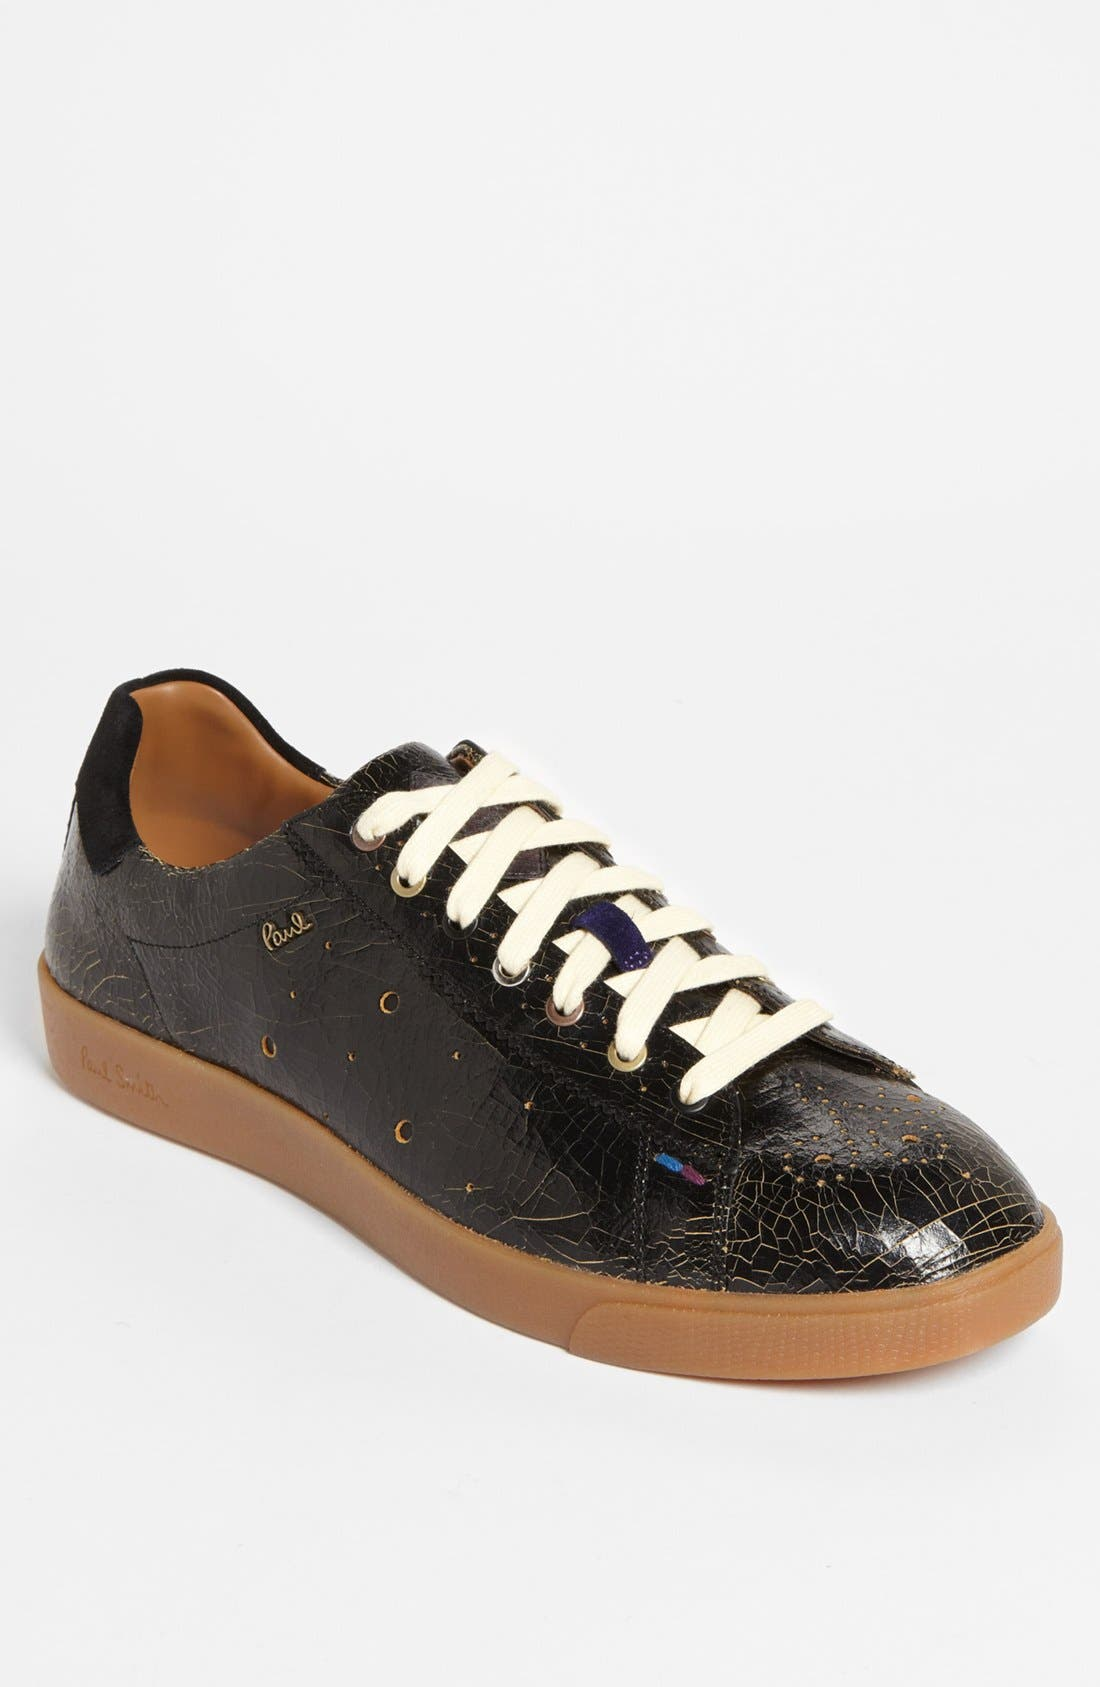 Main Image - Paul Smith 'Lepus Old Boy' Sneaker